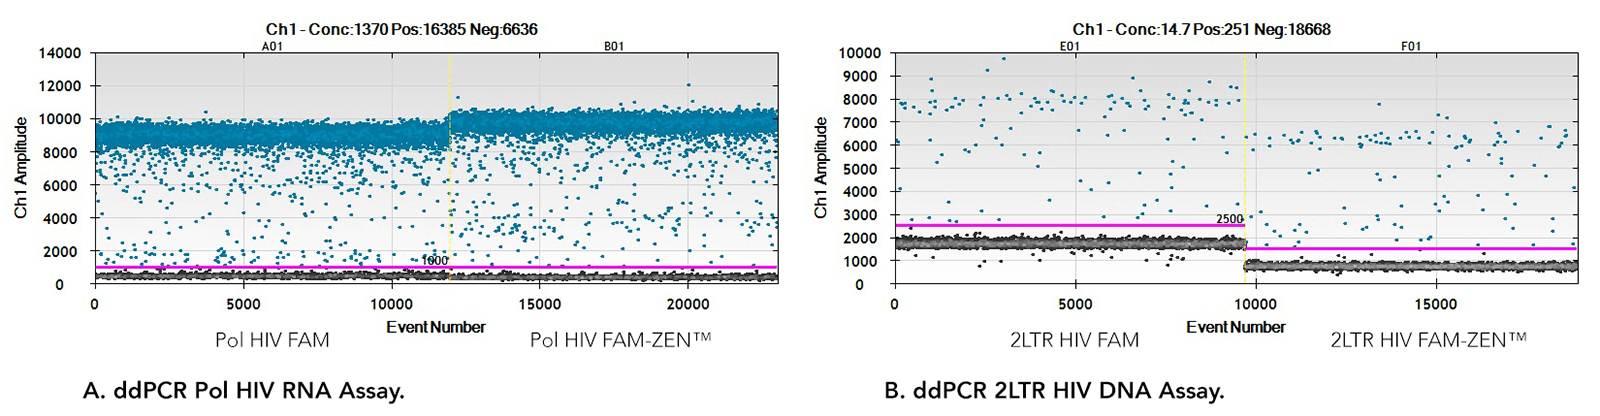 art55-YR-ddPCR-Fig1_ab